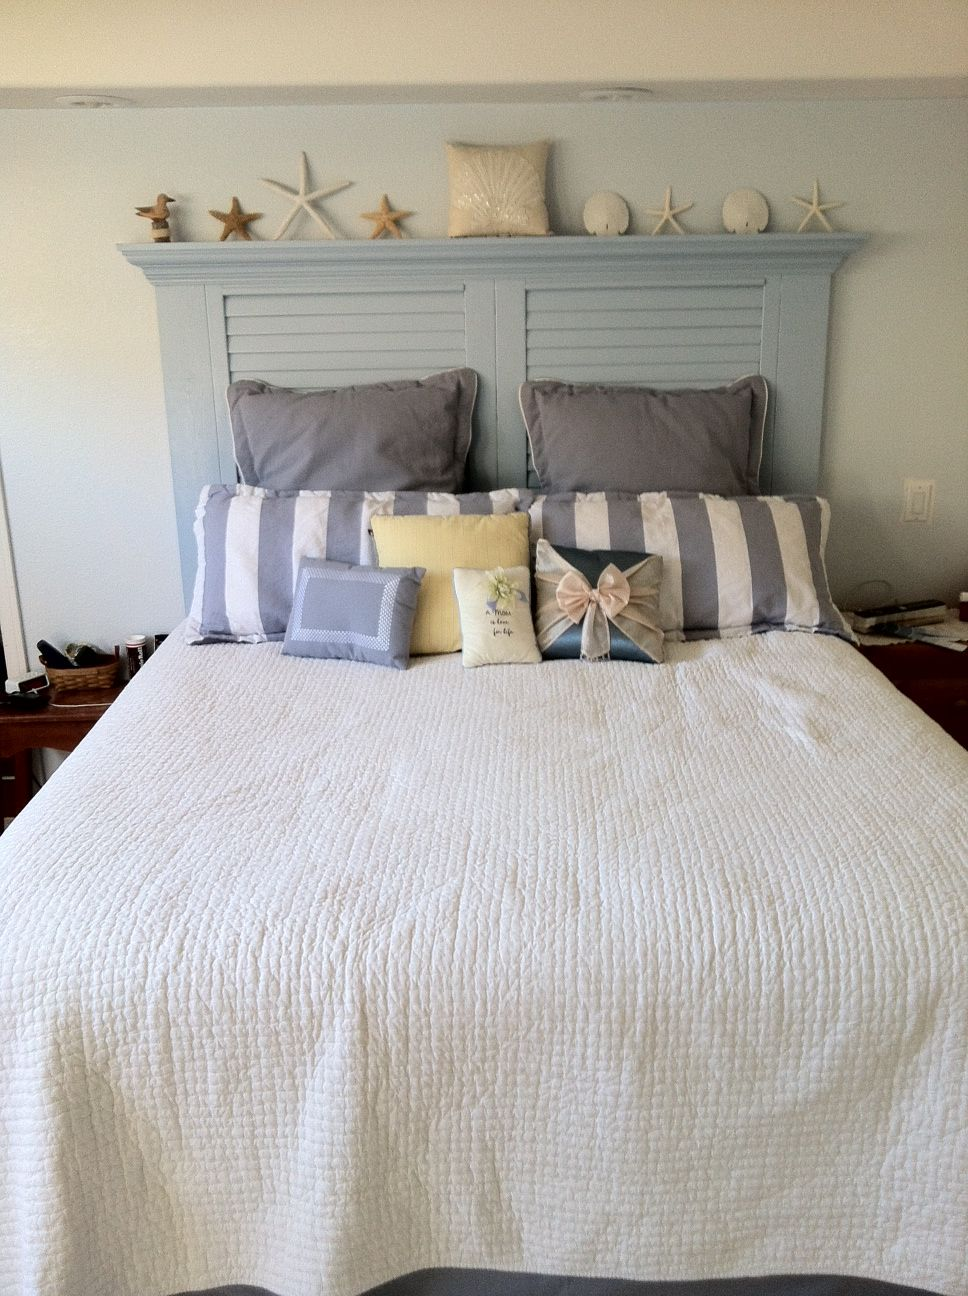 new headboard we made from a reused louvered door | our place